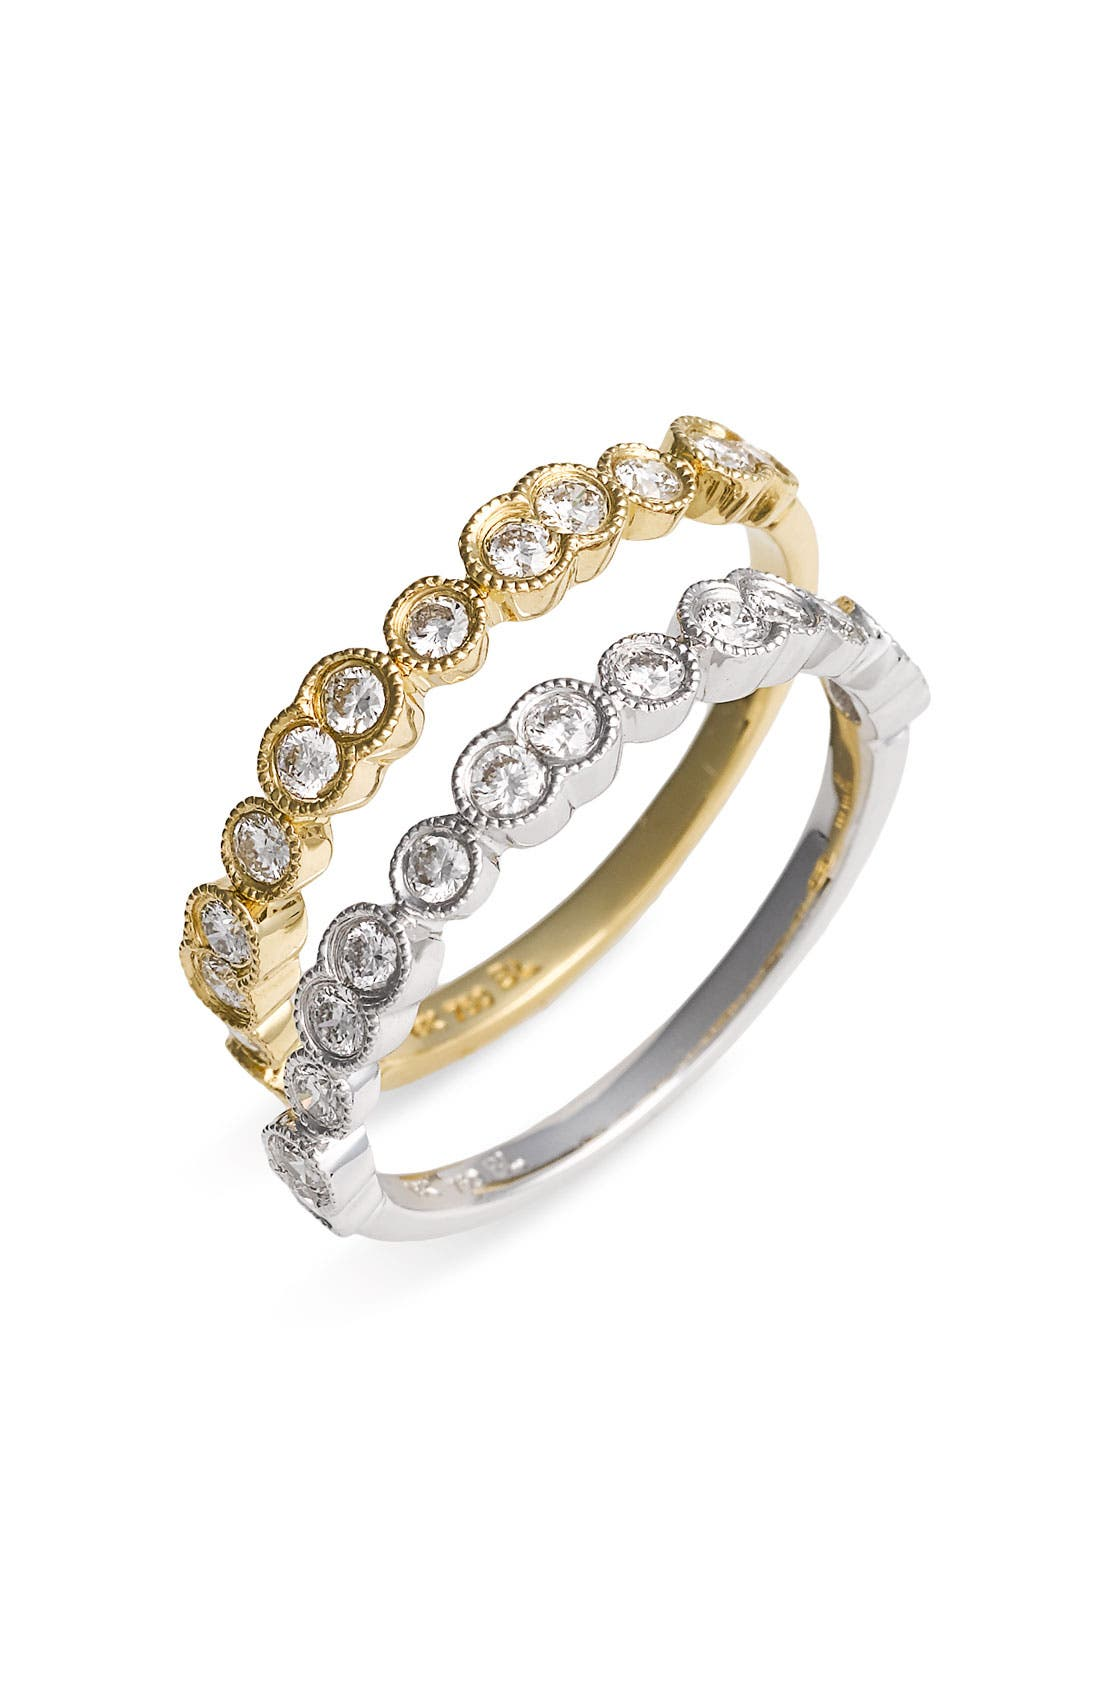 Main Image - Bony Levy Stackable Bezel Set Diamond Ring (Nordstrom Exclusive)